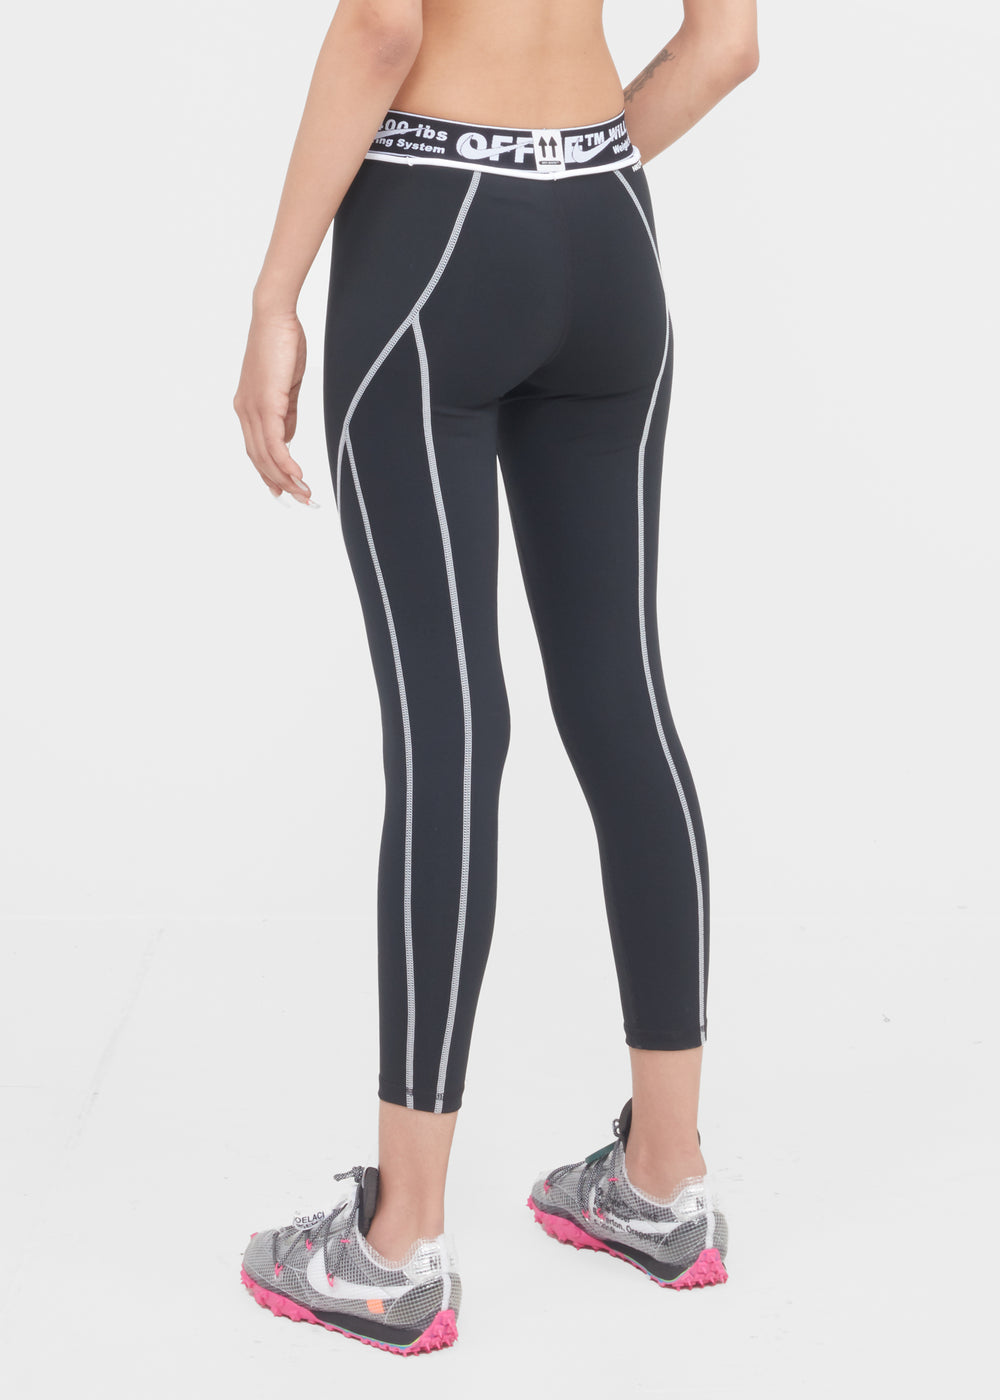 w-nike-ow-tights-cn5574-010-blk-3